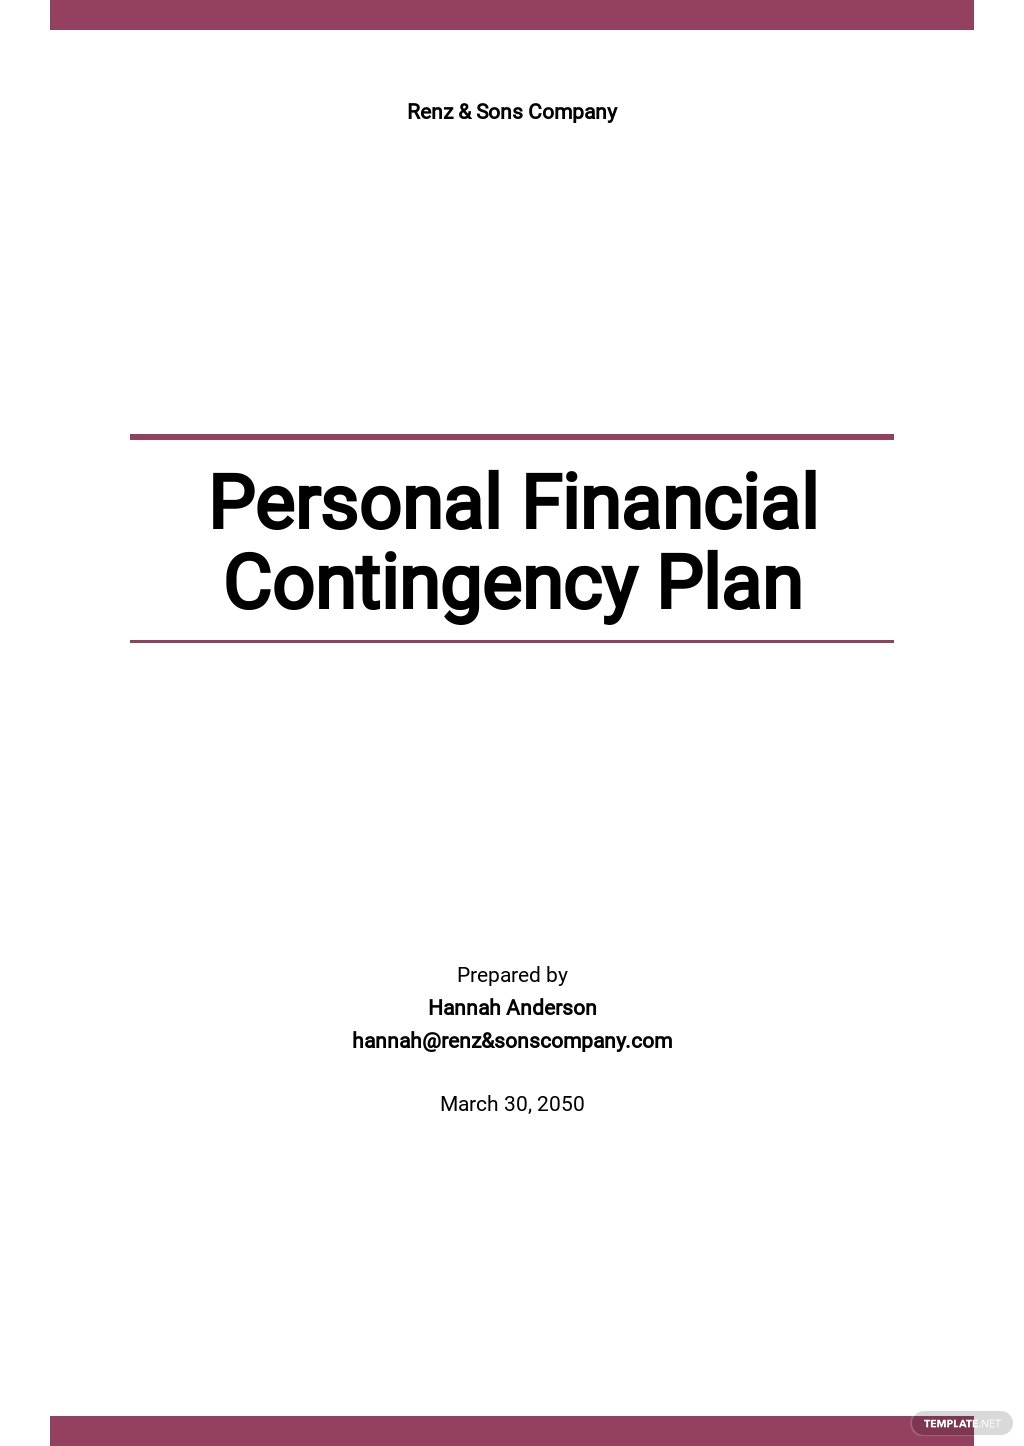 Personal Financial Contingency Plan Template.jpe